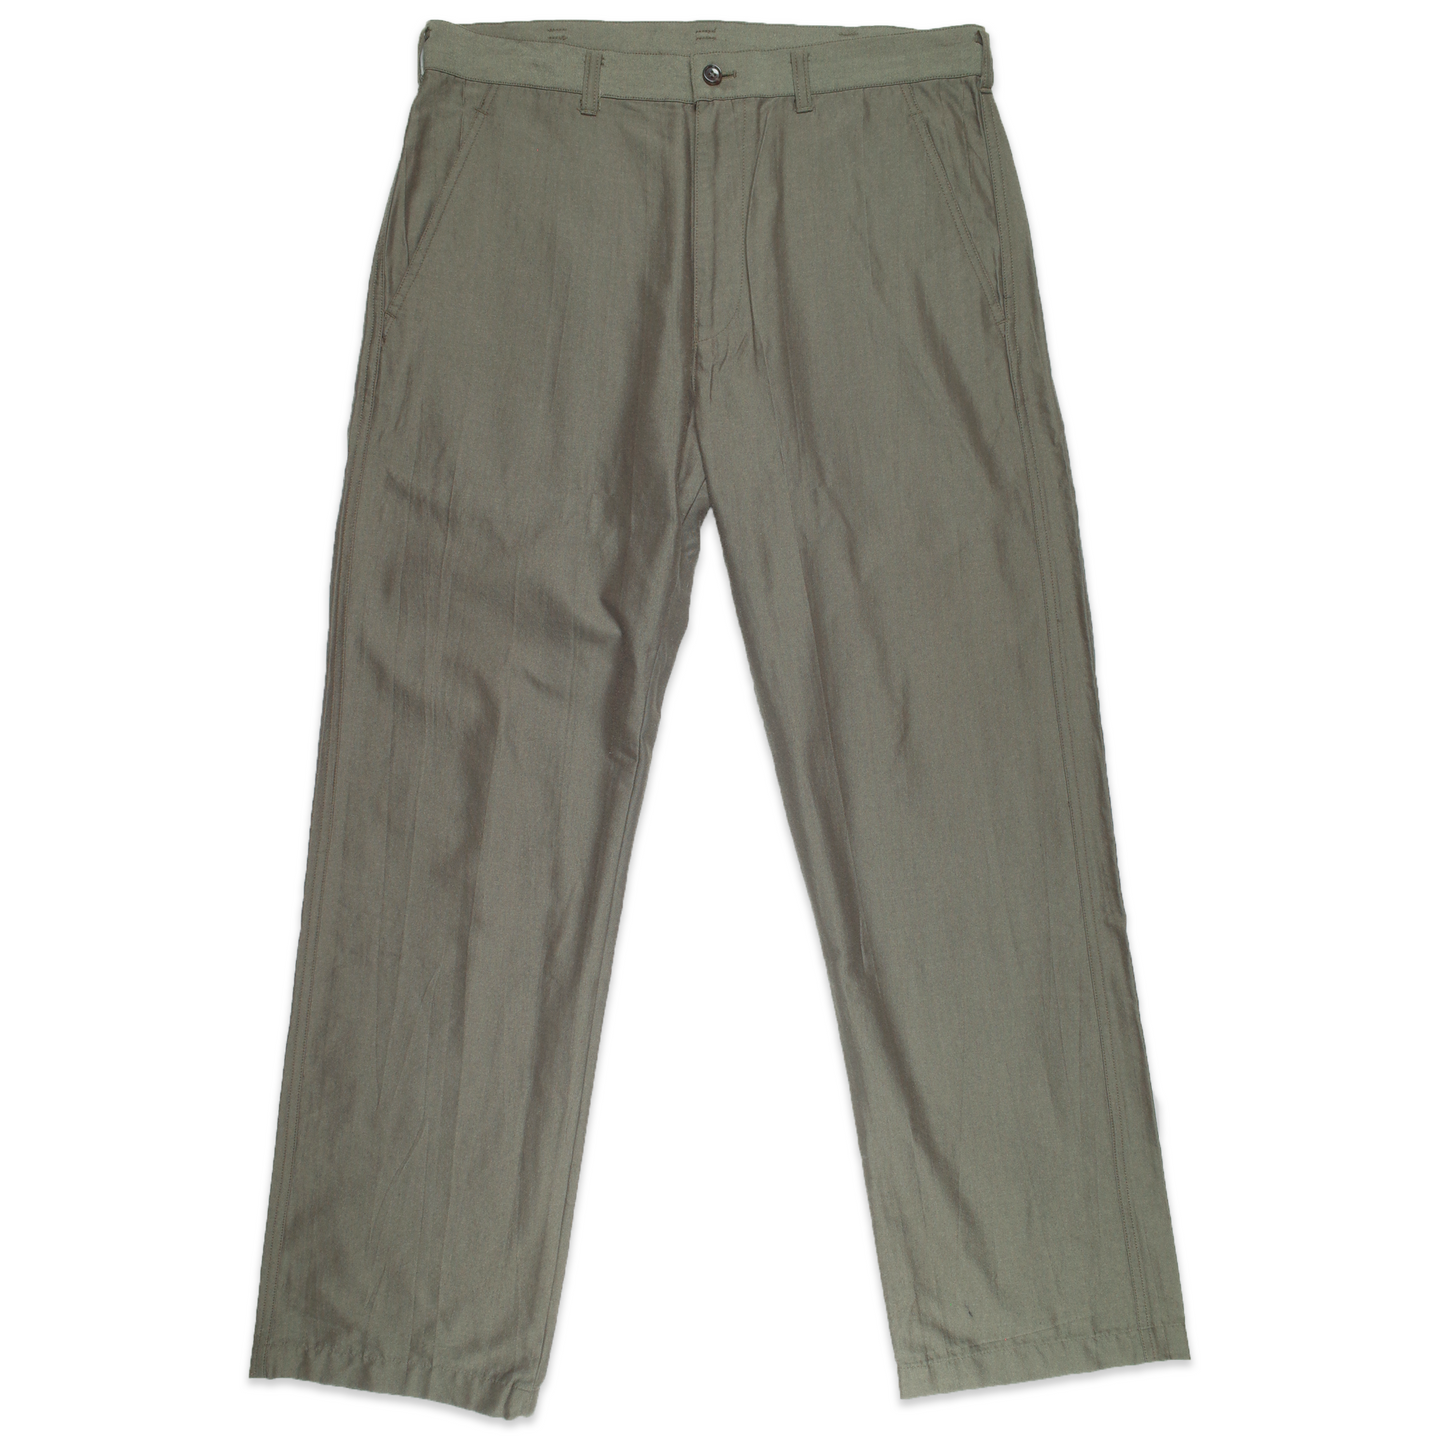 CDG Homme Khaki rayon trousers <Br>  Size Small